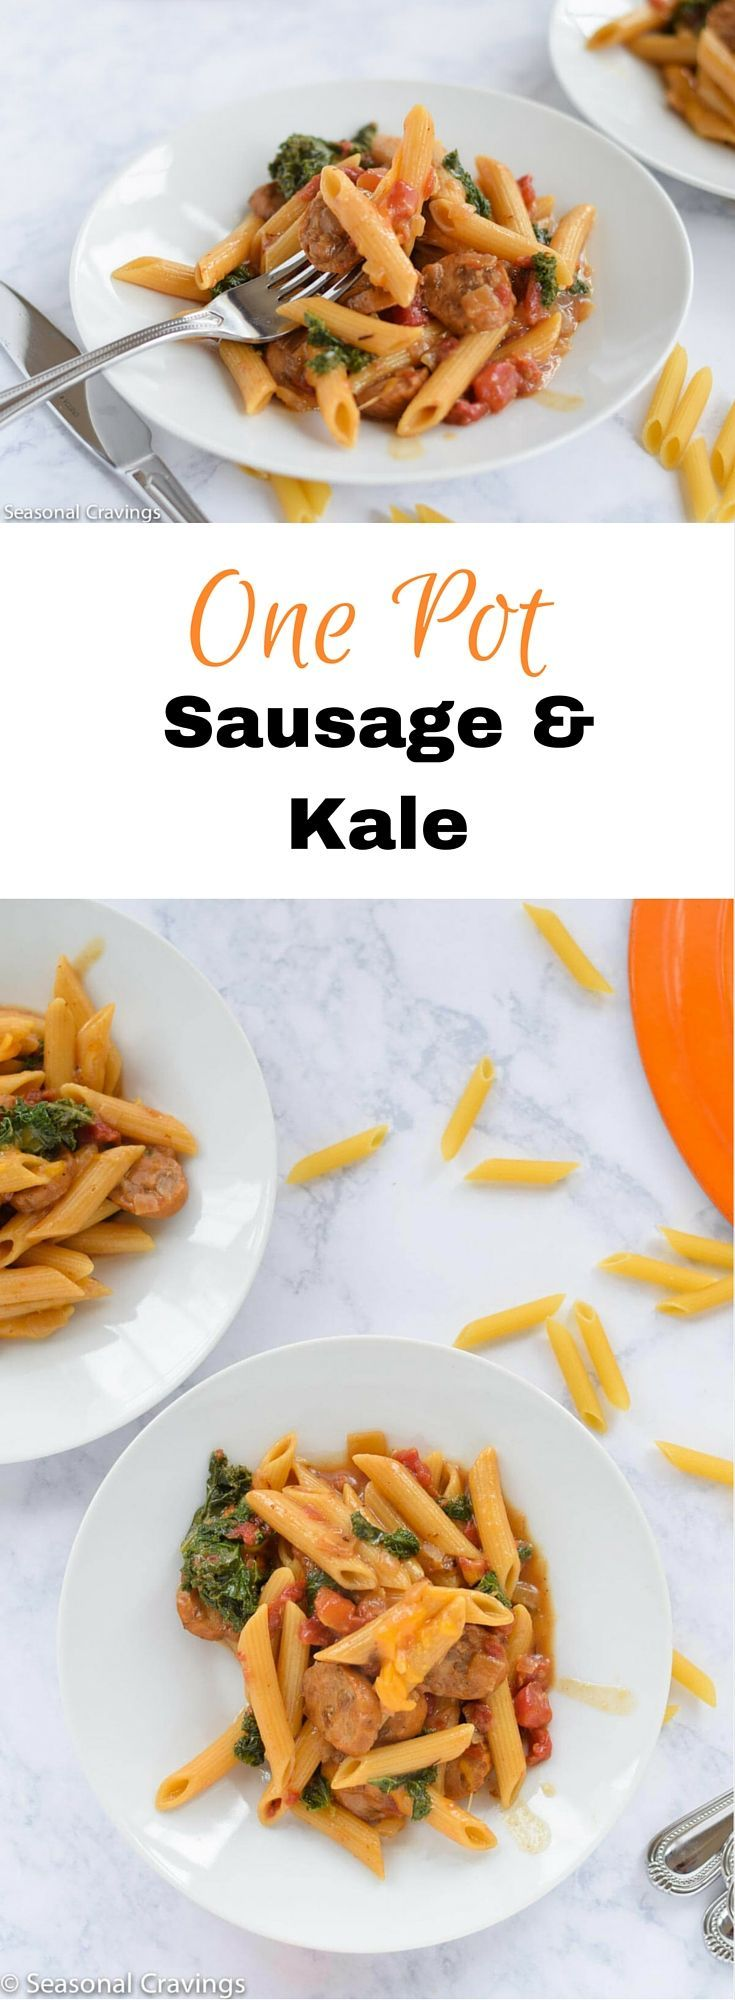 One Pot Sausage and Kale - quick, easy and healthy.  This will become a…